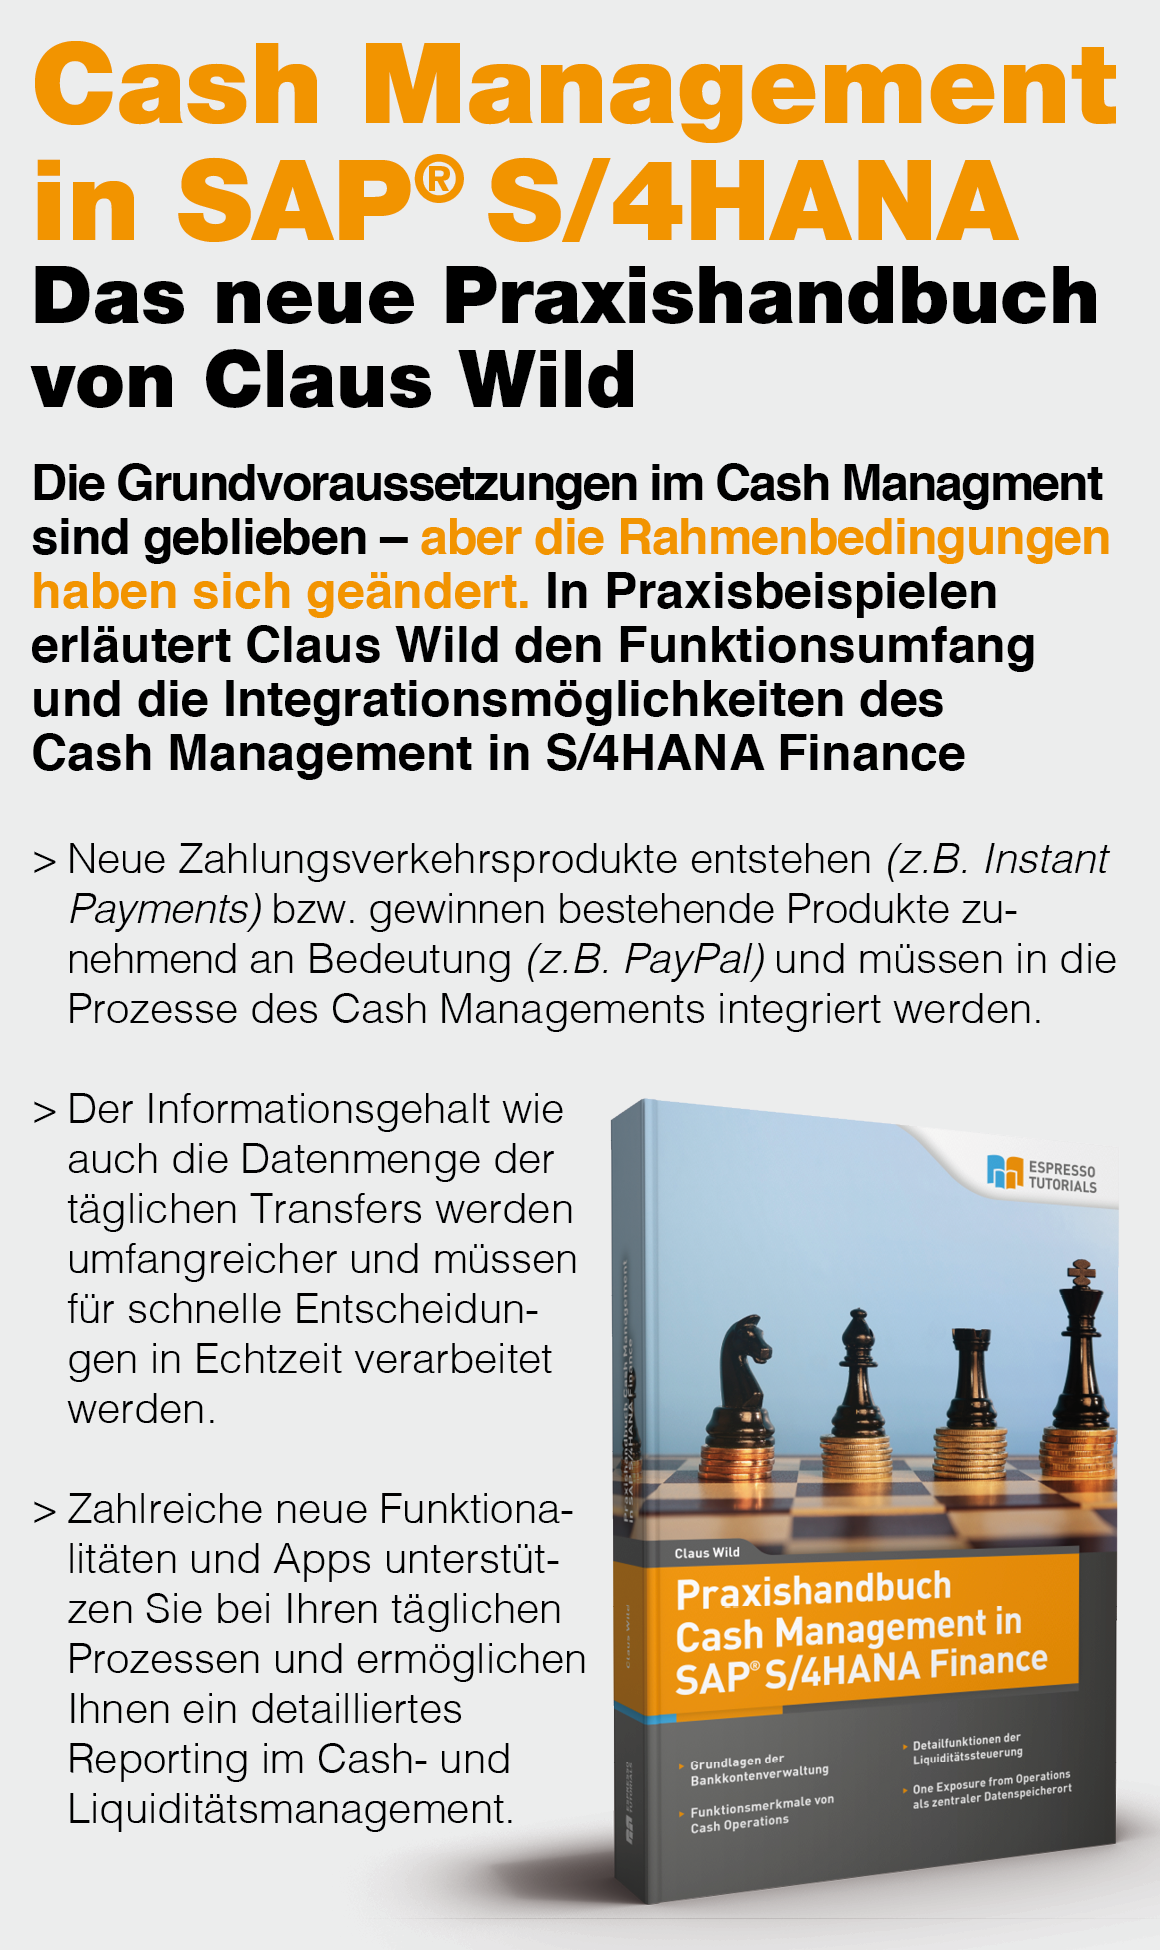 20181217_Praxishandbuch_SAP_Cash_Management.png